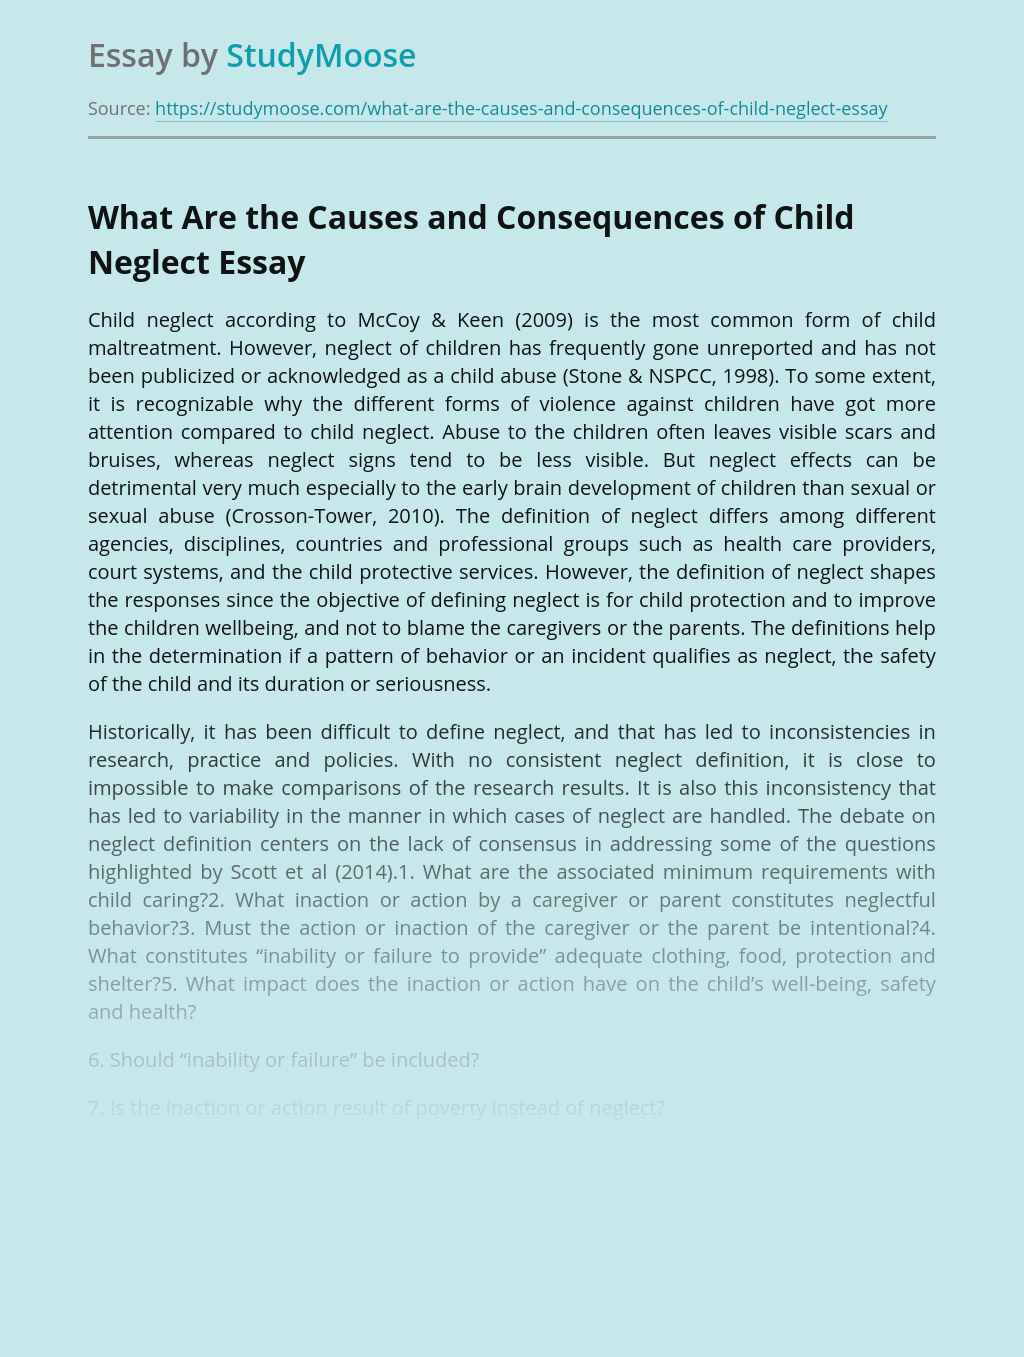 What Are the Causes and Consequences of Child Neglect